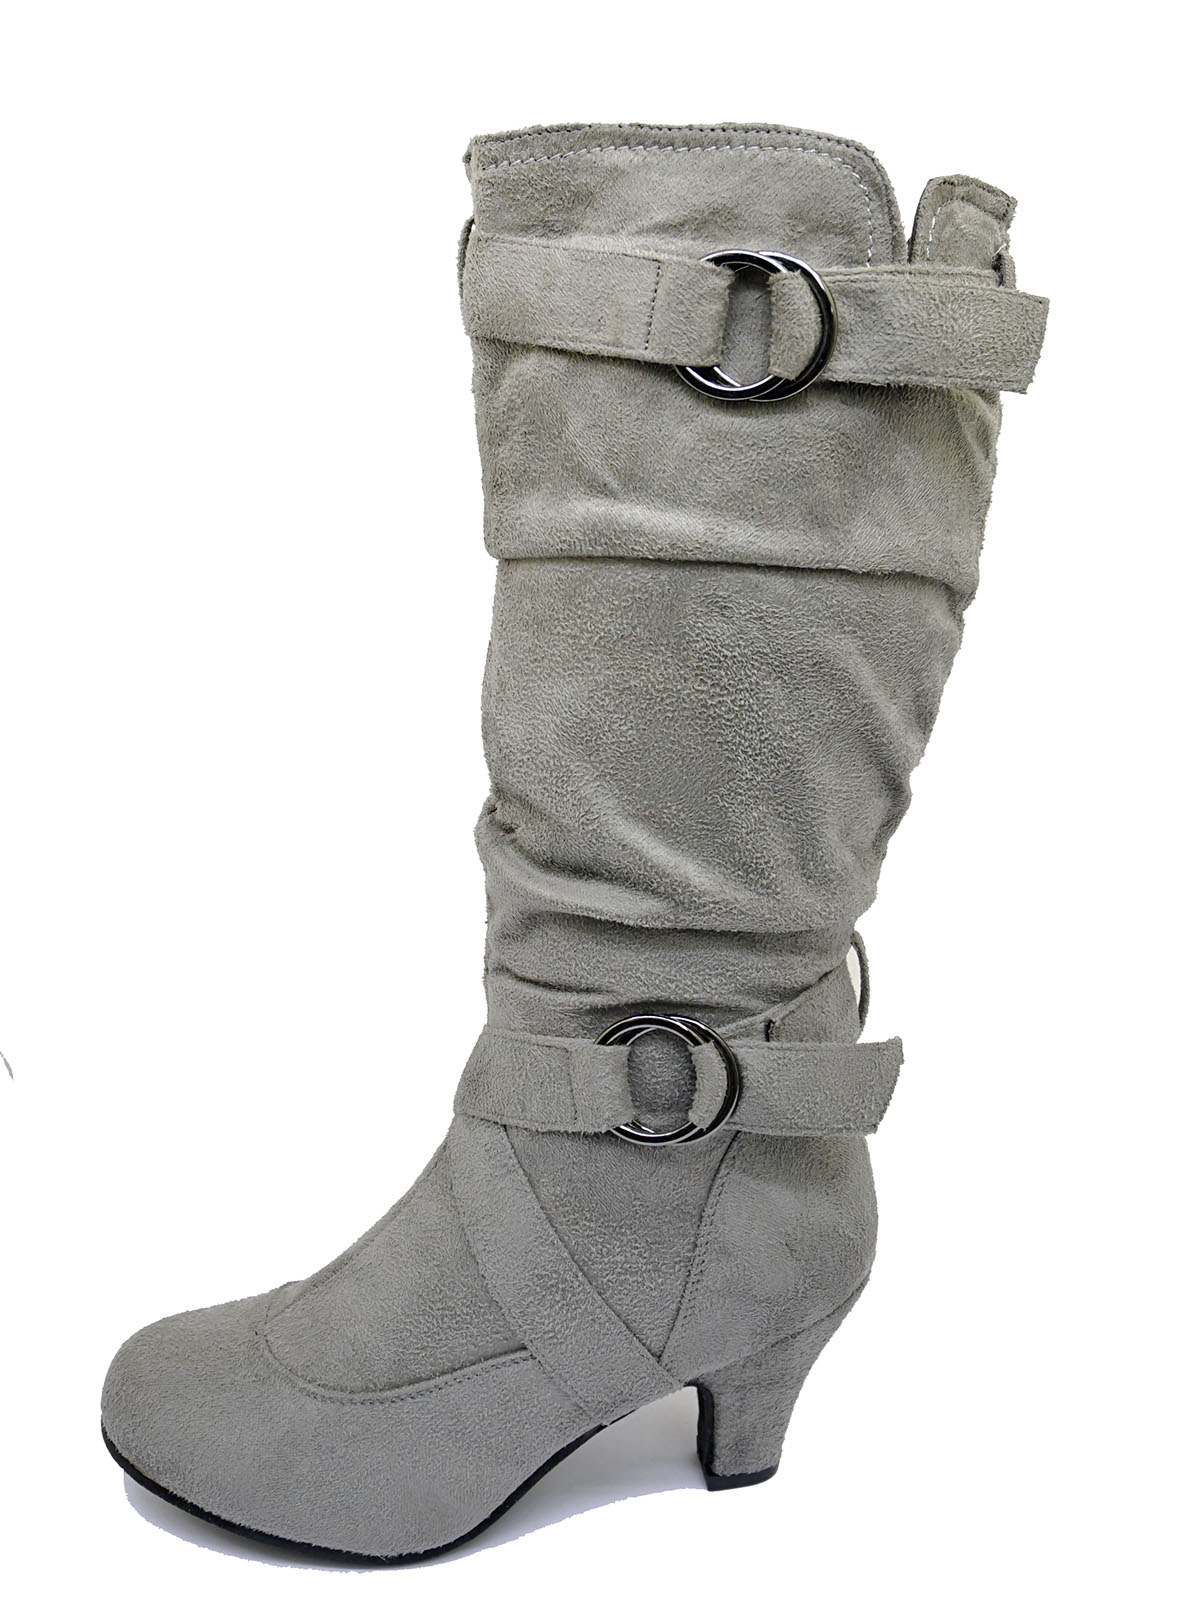 LADIES-GREY-ZIP-UP-BIKER-SLOUCH-RUCHED-TALL-KNEE-CALF-LOW-HEEL-BOOTS-SHOES-4-10 thumbnail 9